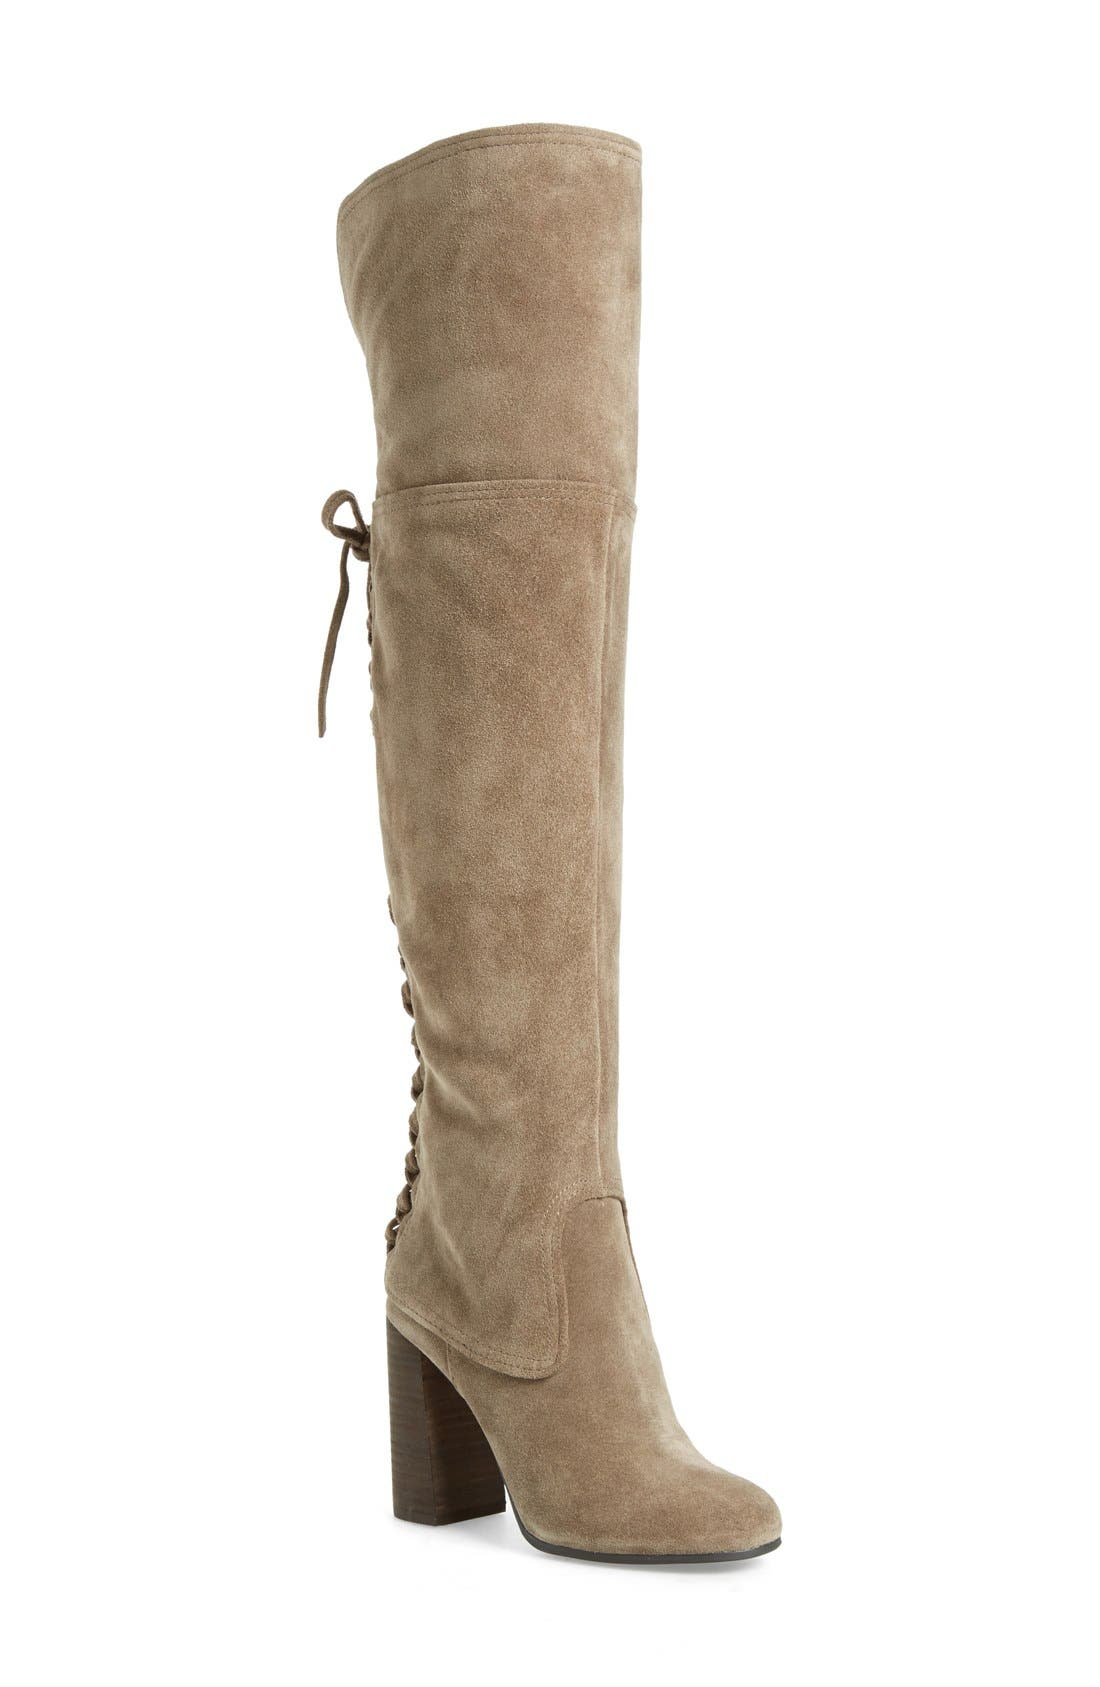 Main Image - Vince Camuto Tolla Over the Knee Boot (Women)